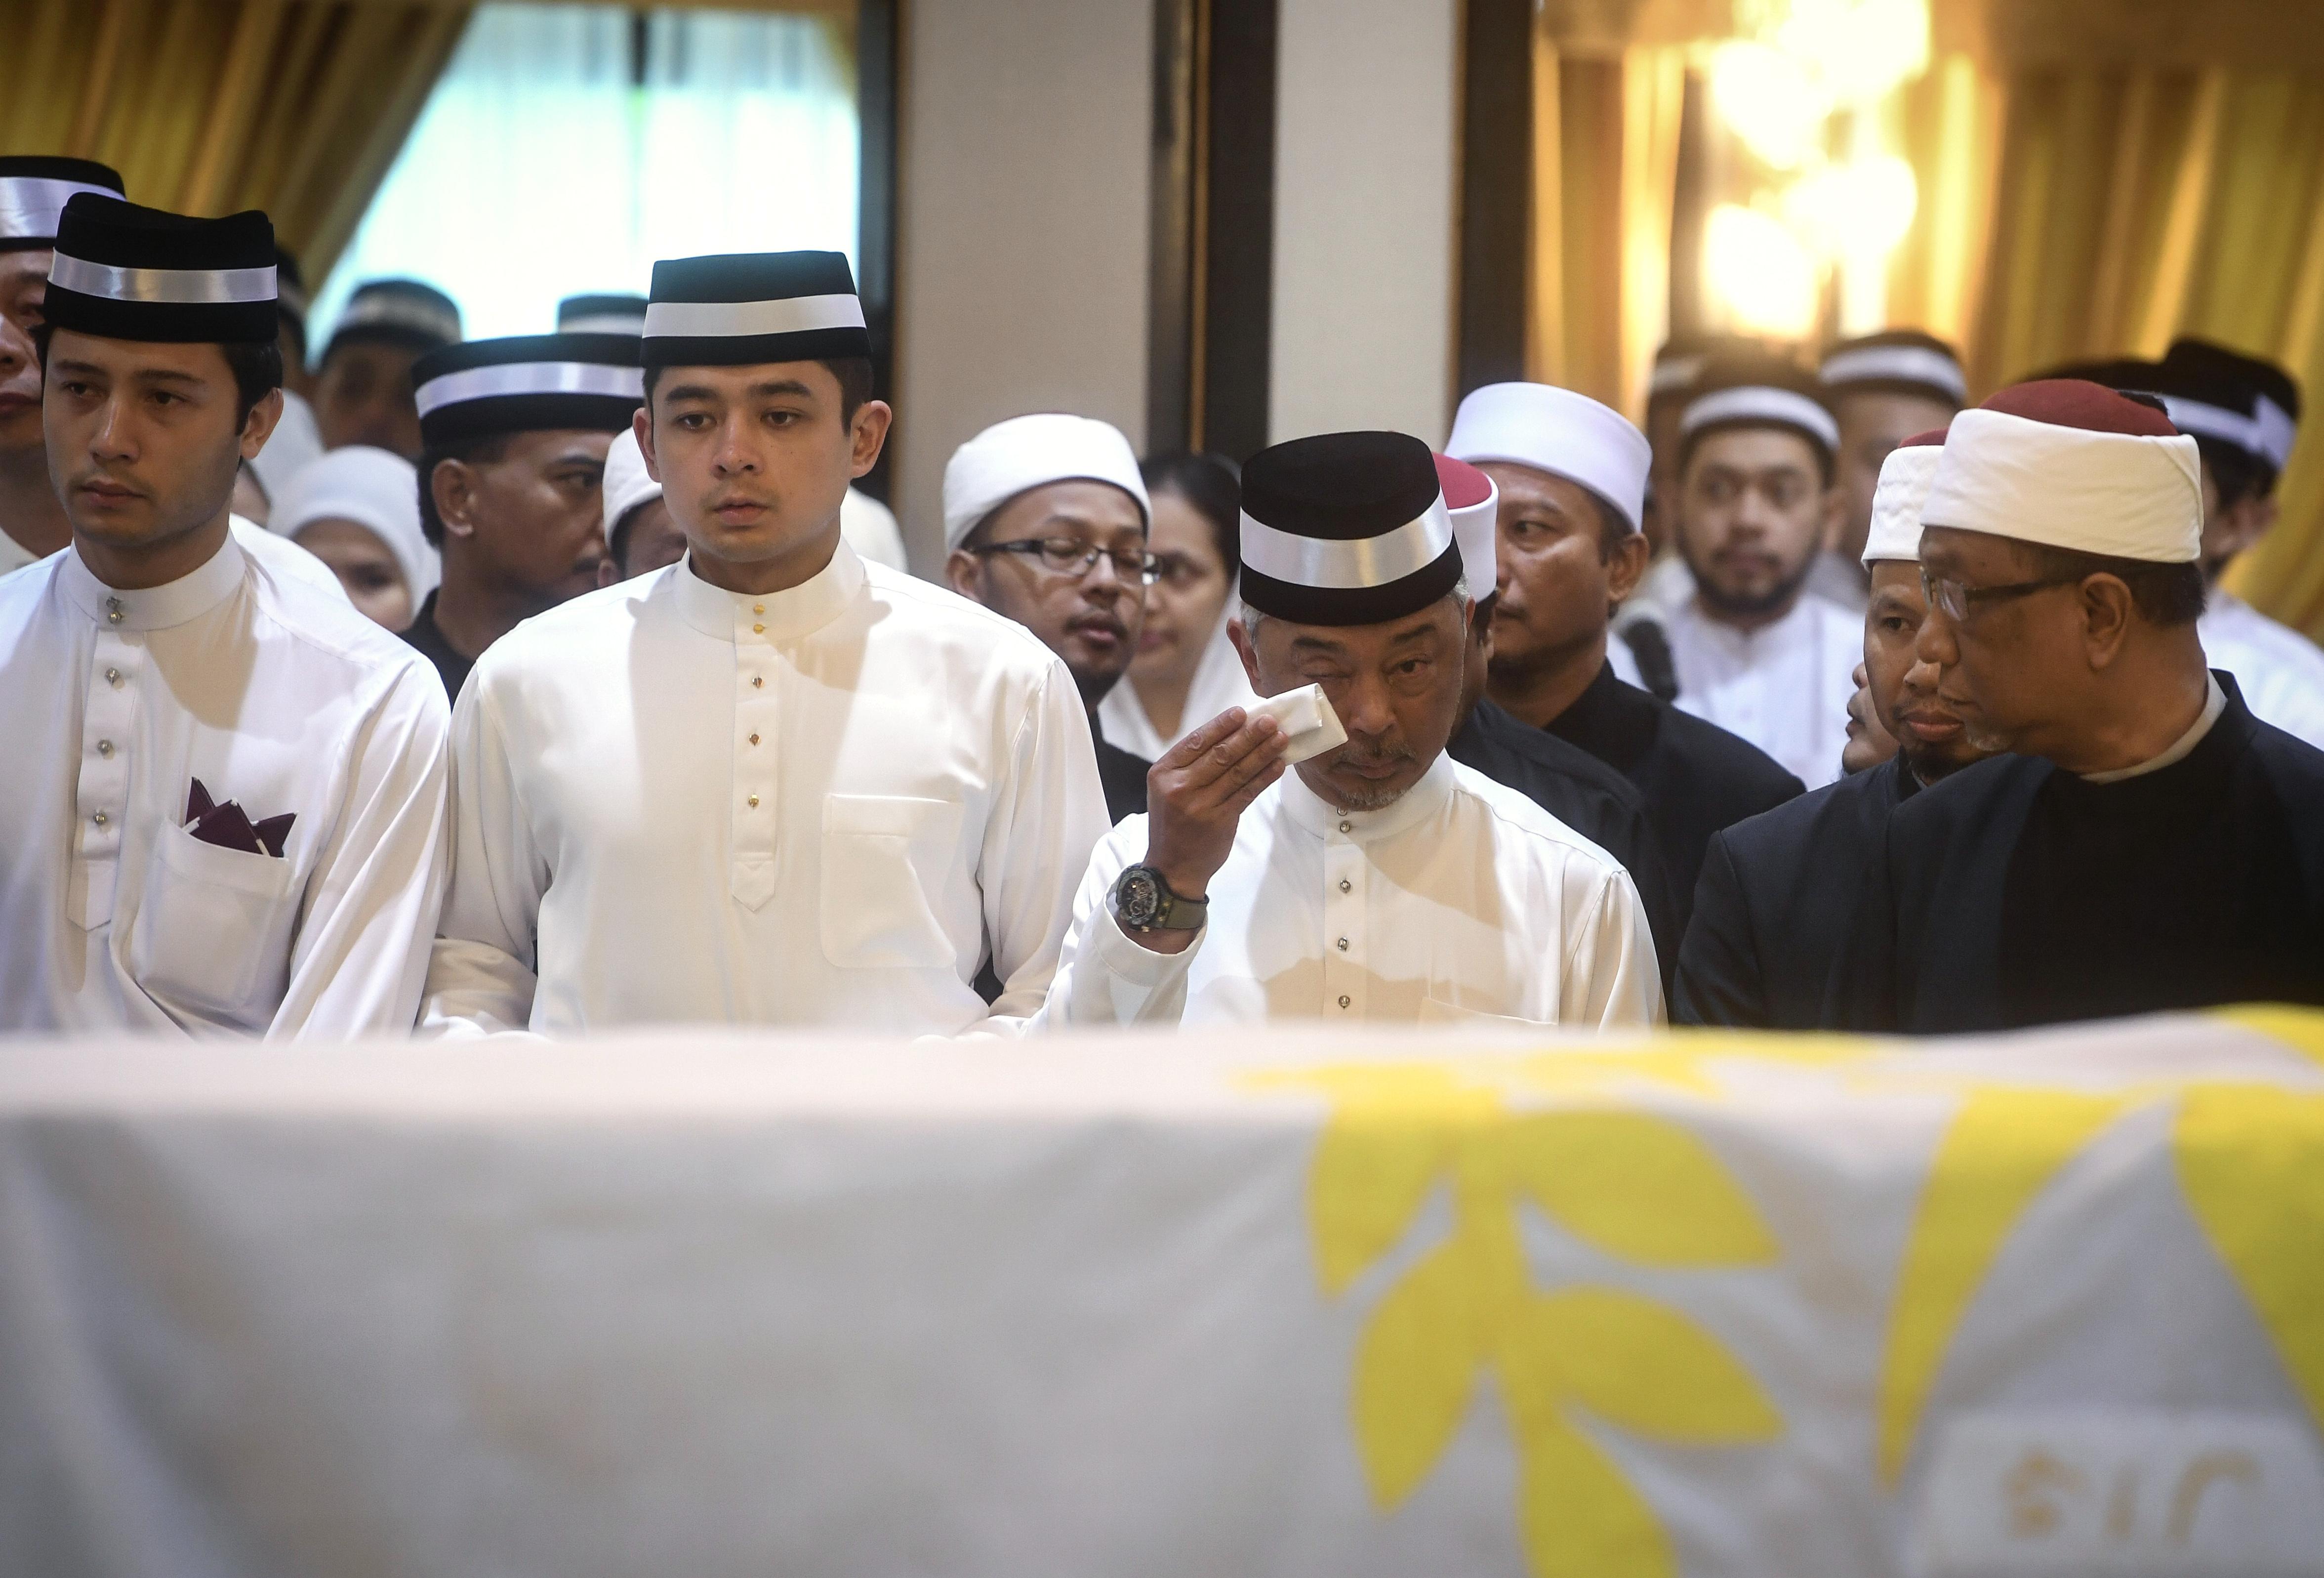 King sheds tears as he pays his last respects to his father